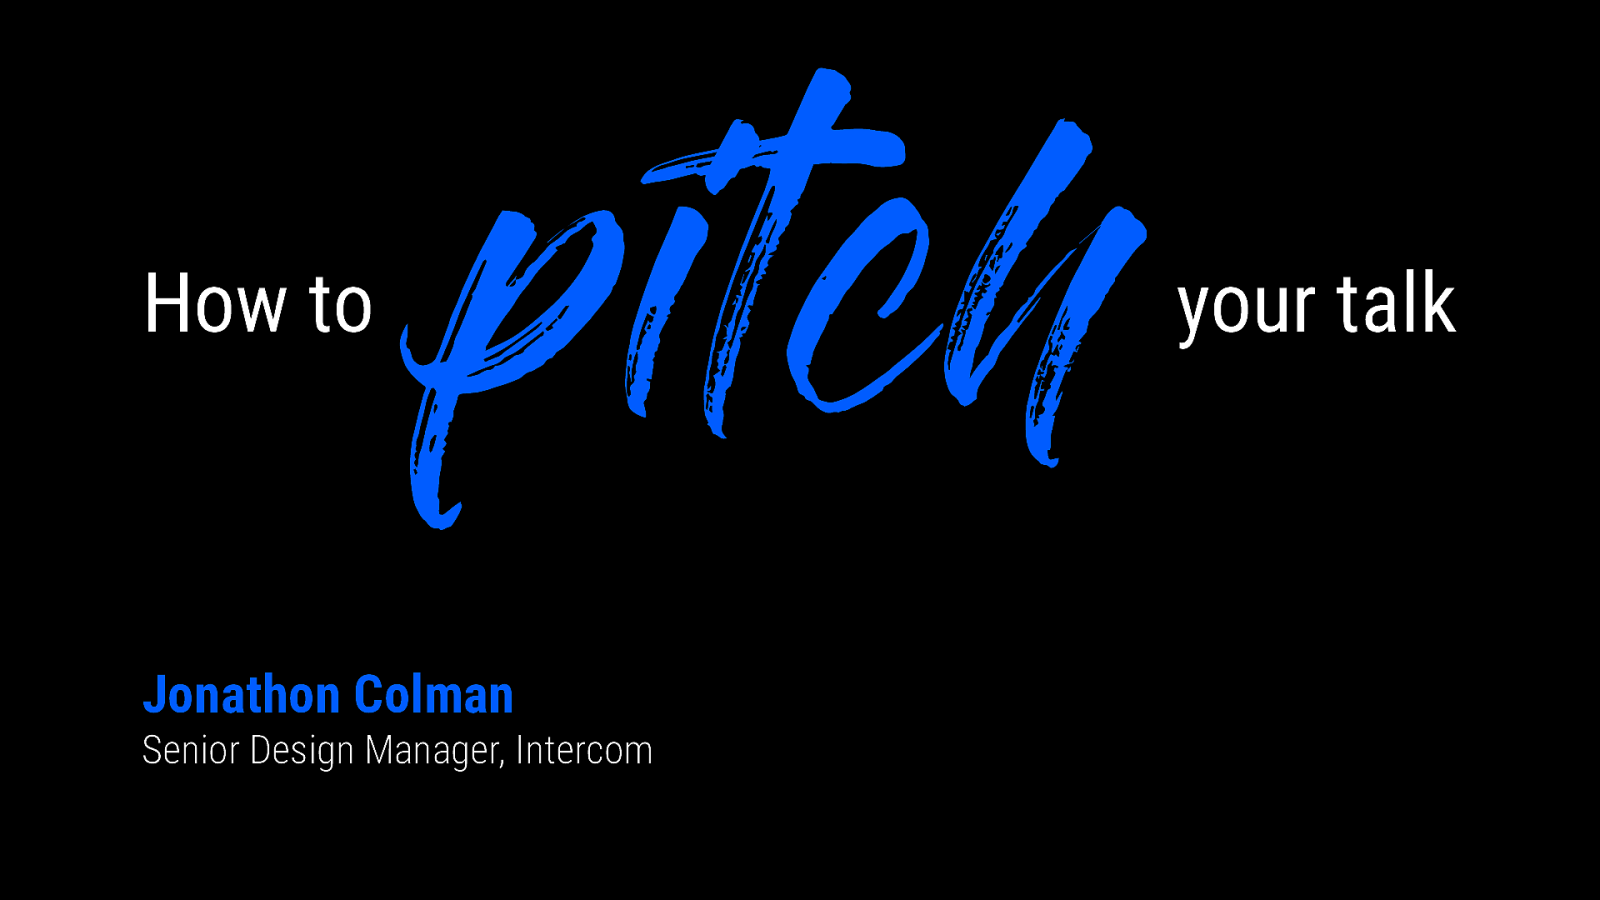 How to pitch your talk